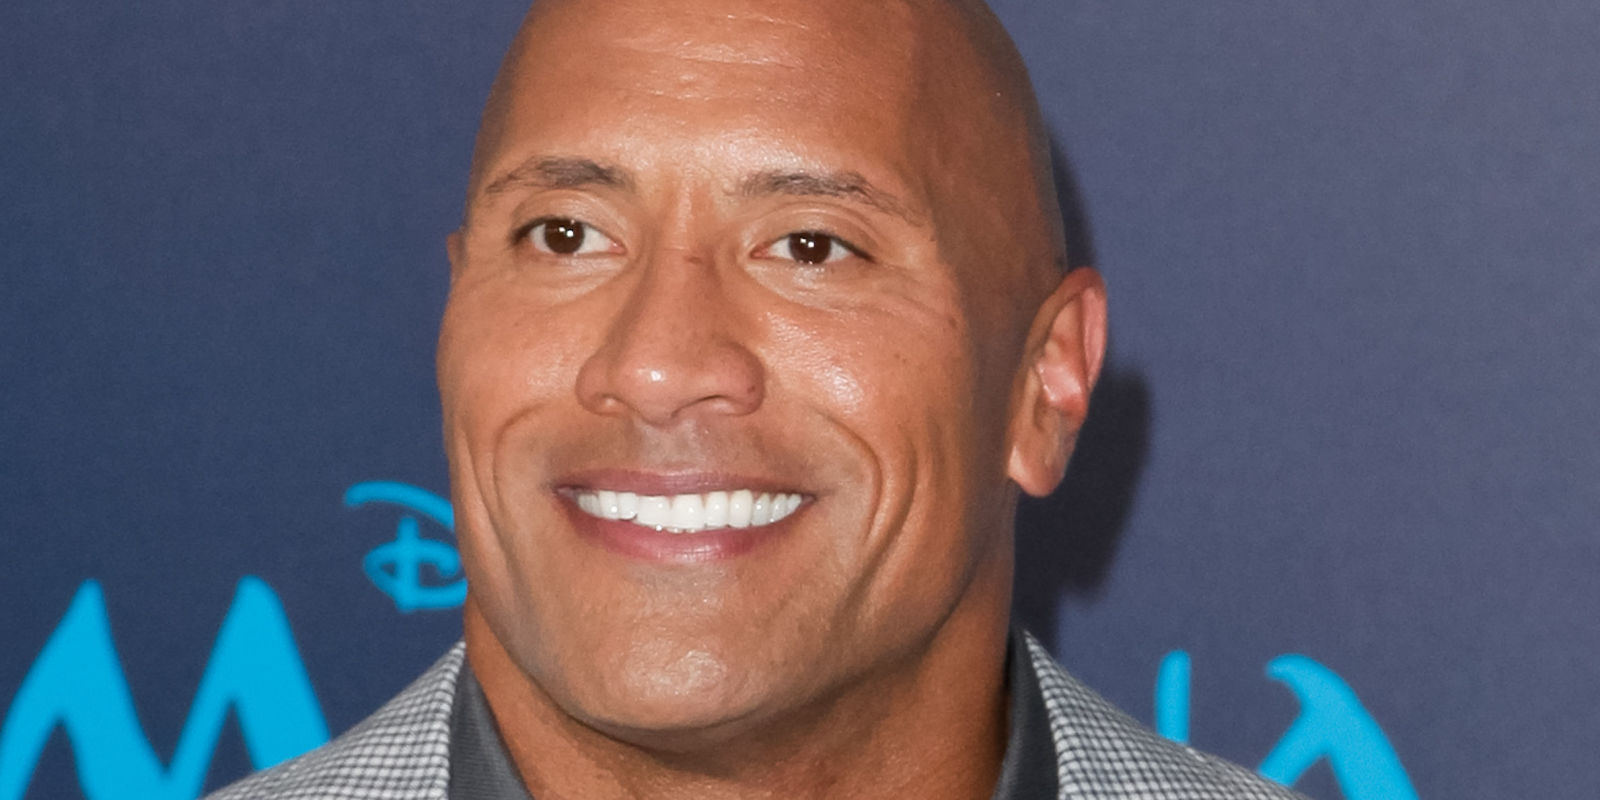 Here's What Dwayne 'The Rock' Johnson Actually Eats on a Cheat Day